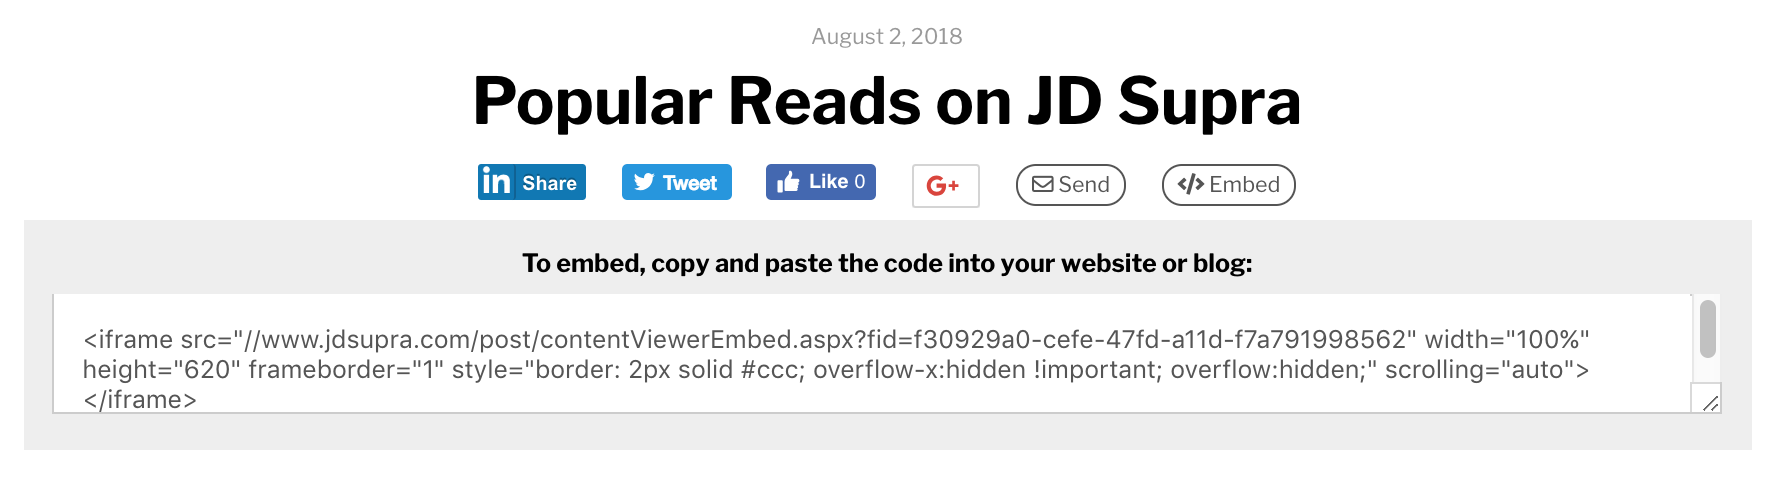 How To: Embed JD Supra Content